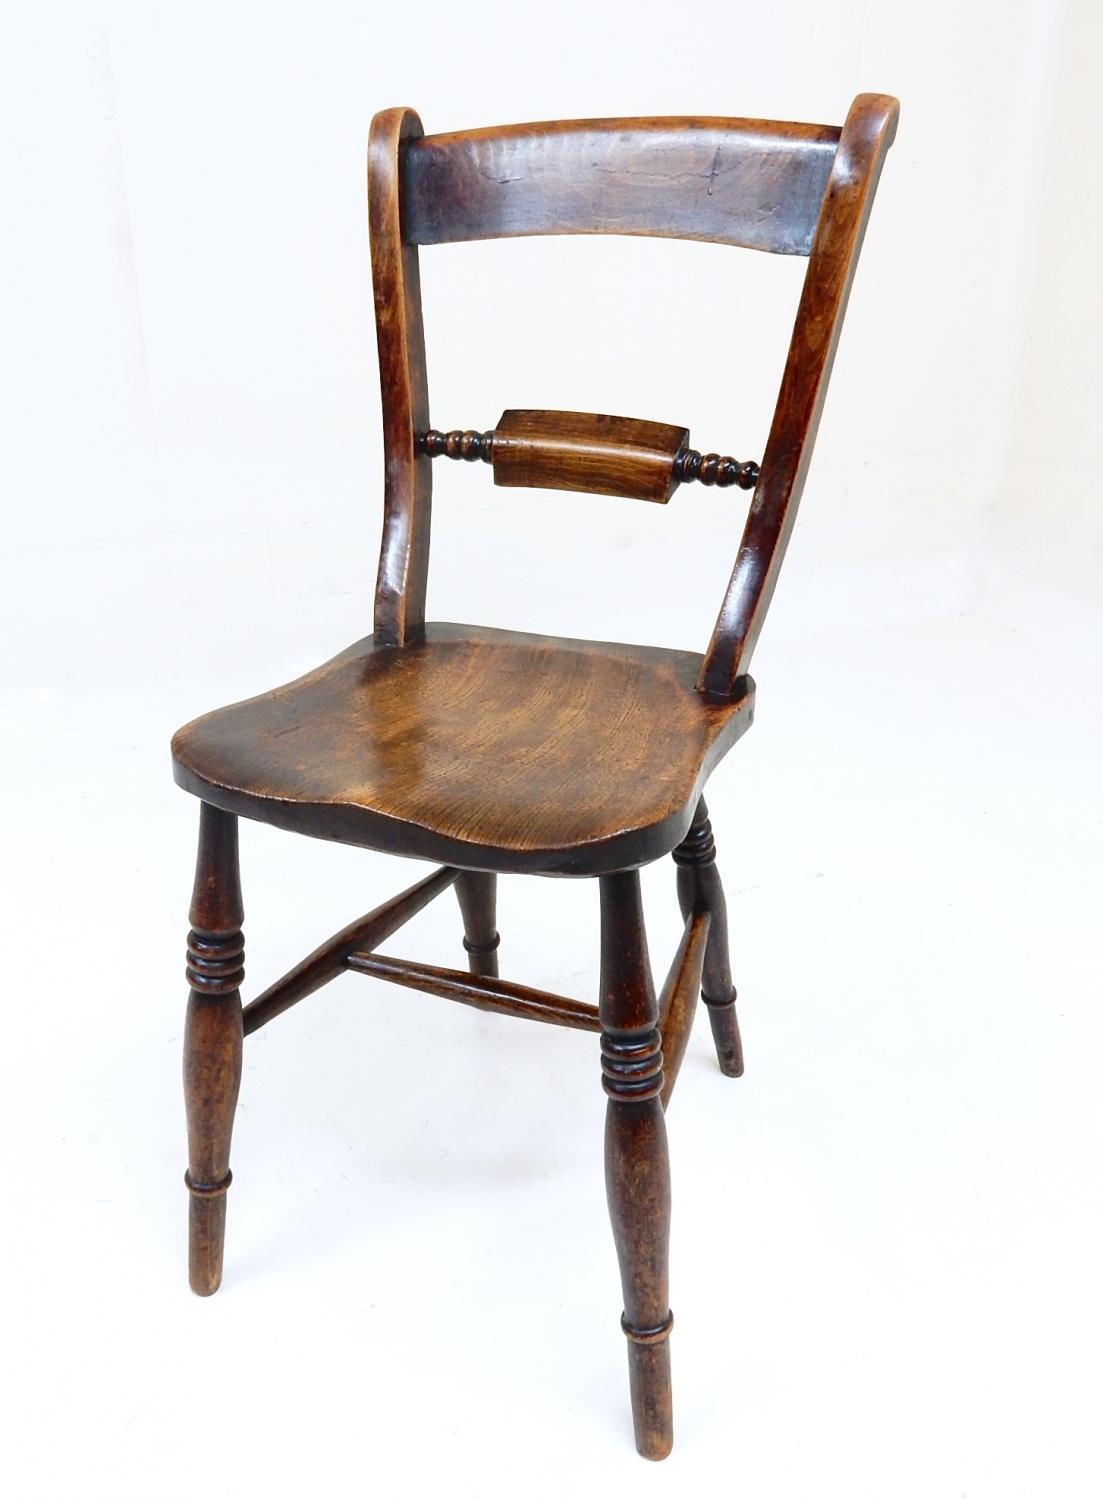 Antique windsor kitchen chairs picture 4